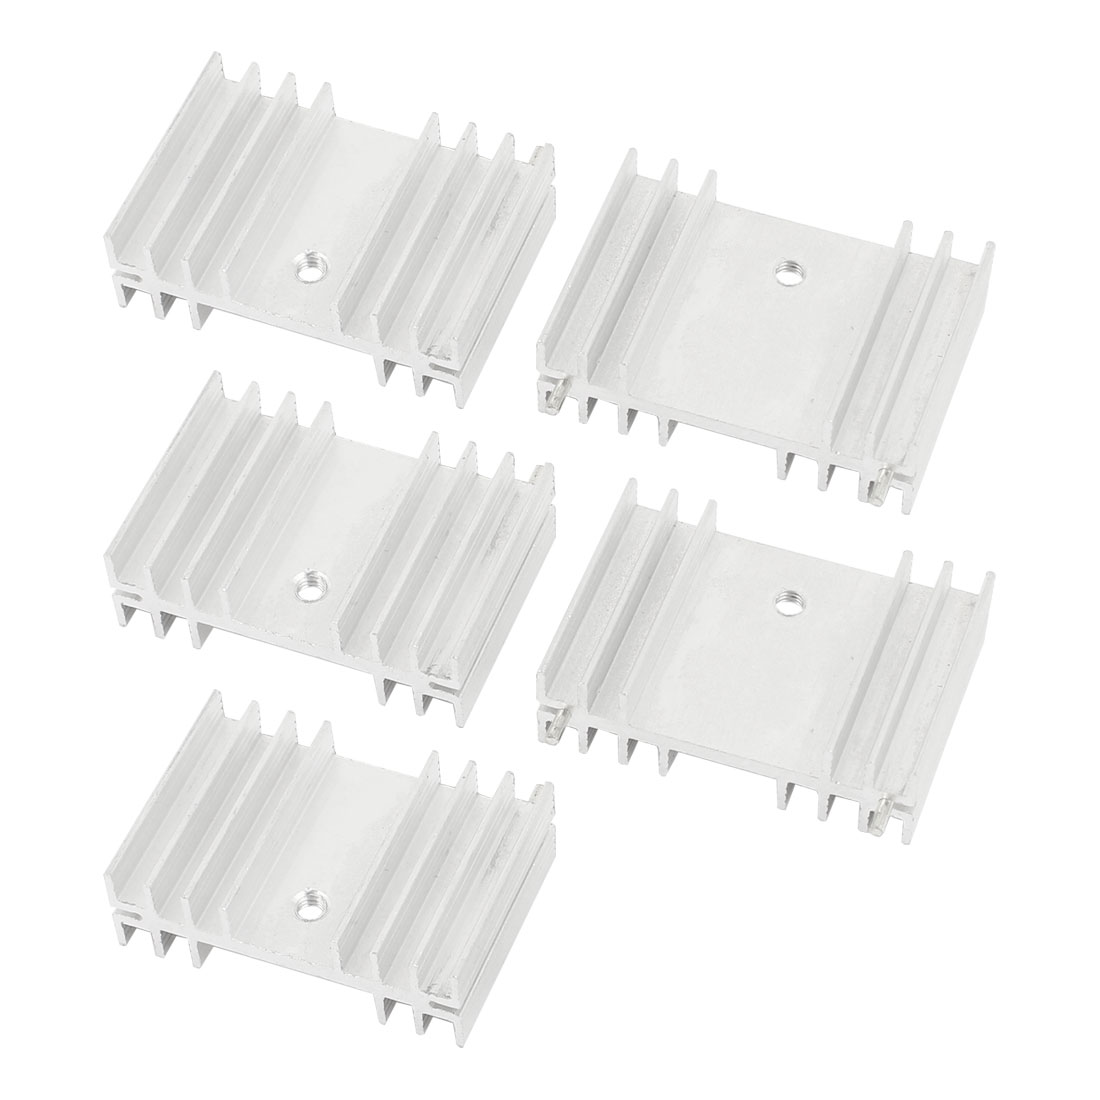 5 Pcs Silver Tone Aluminum Heat Sink 36x25x11mm for MOSFET Transistors